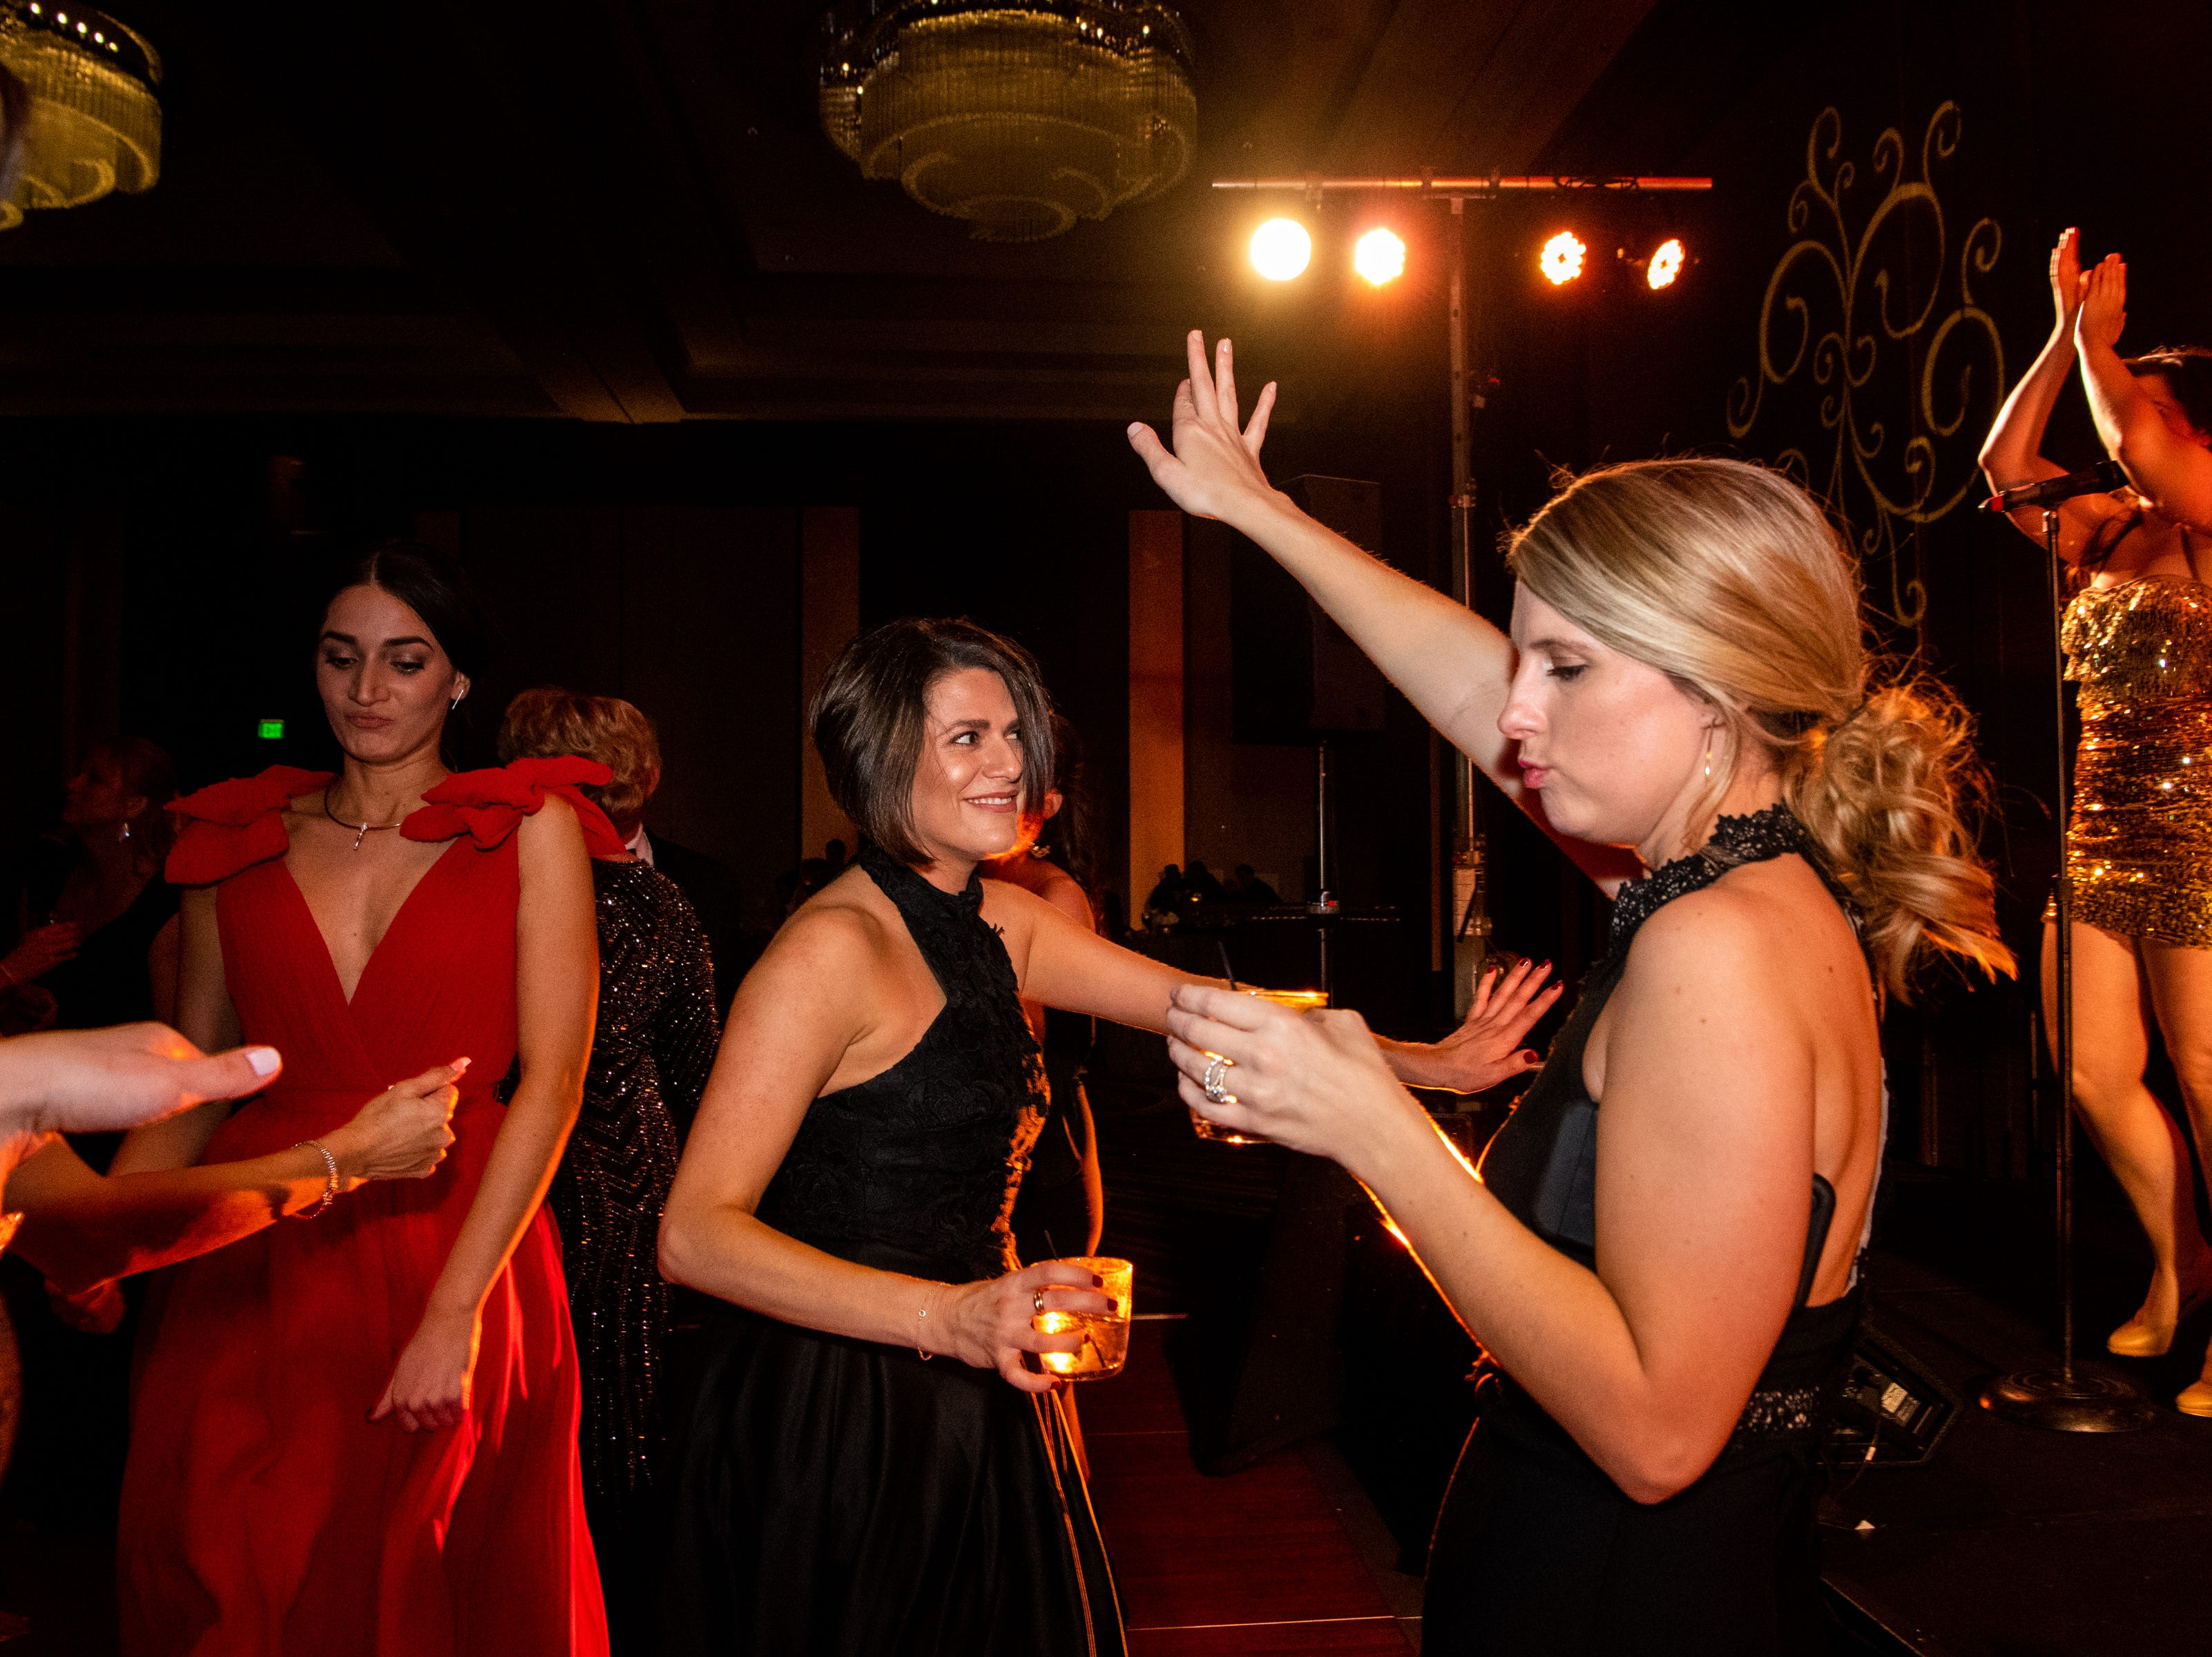 People dance during Austin Peay State University's annual Candlelight Ball at the Omni Nashville Hotel Saturday, March 16, 2019, in Nashville, Tenn.